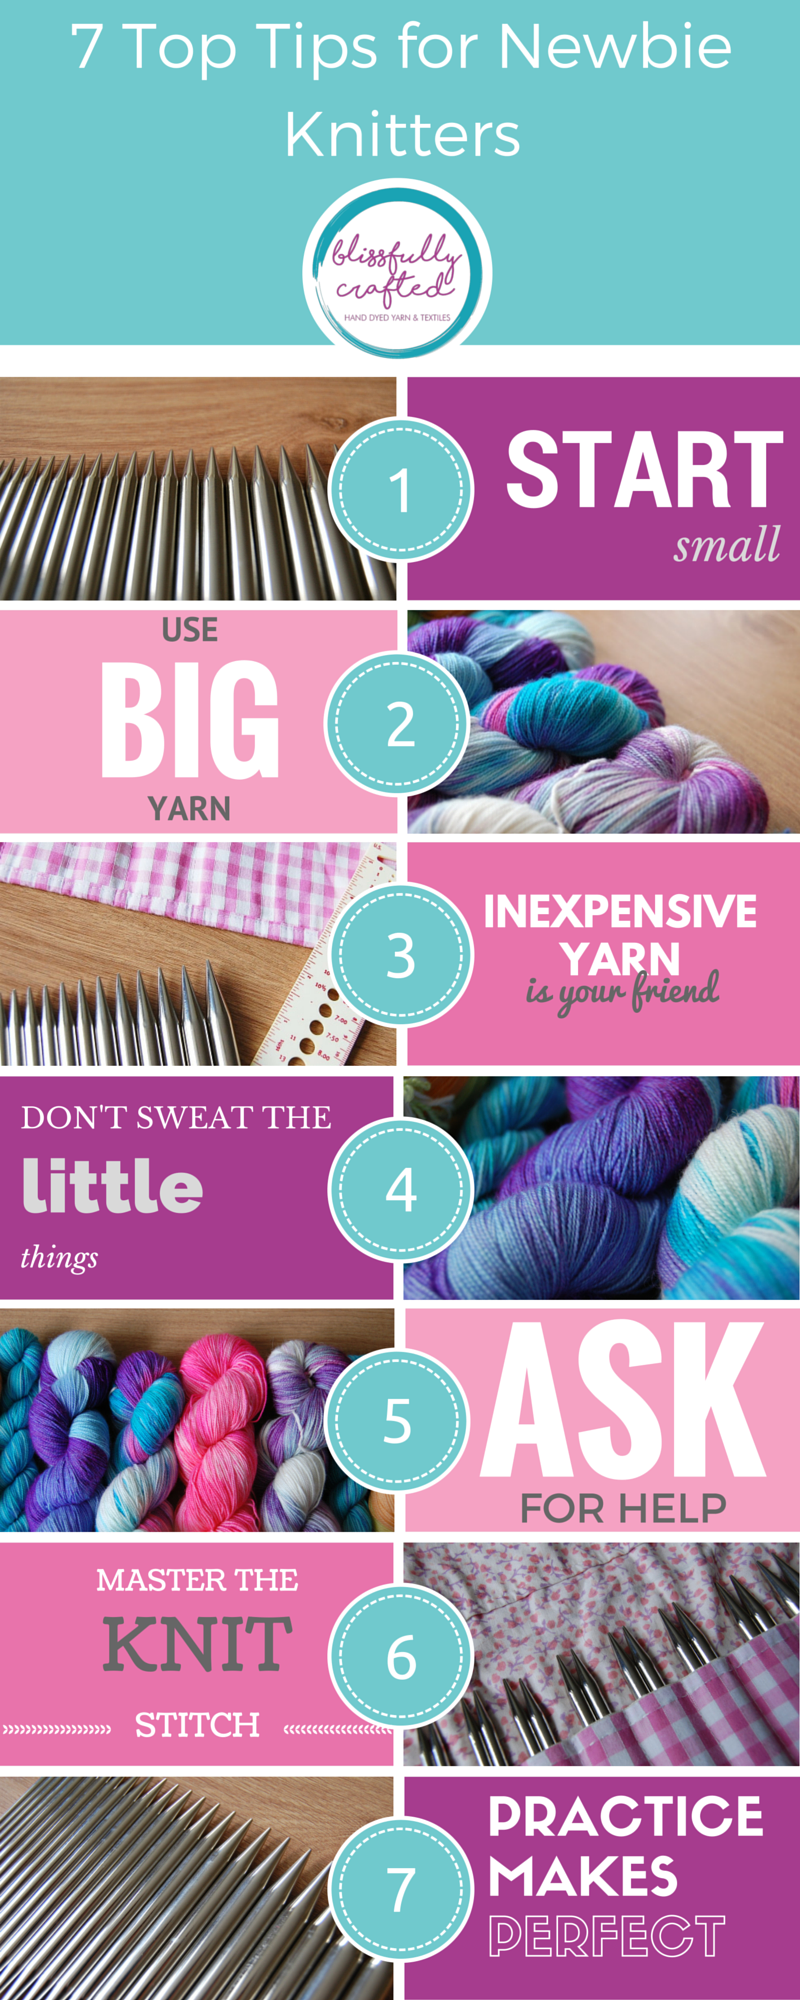 7-Top-Tips-for-New-Knitters.png